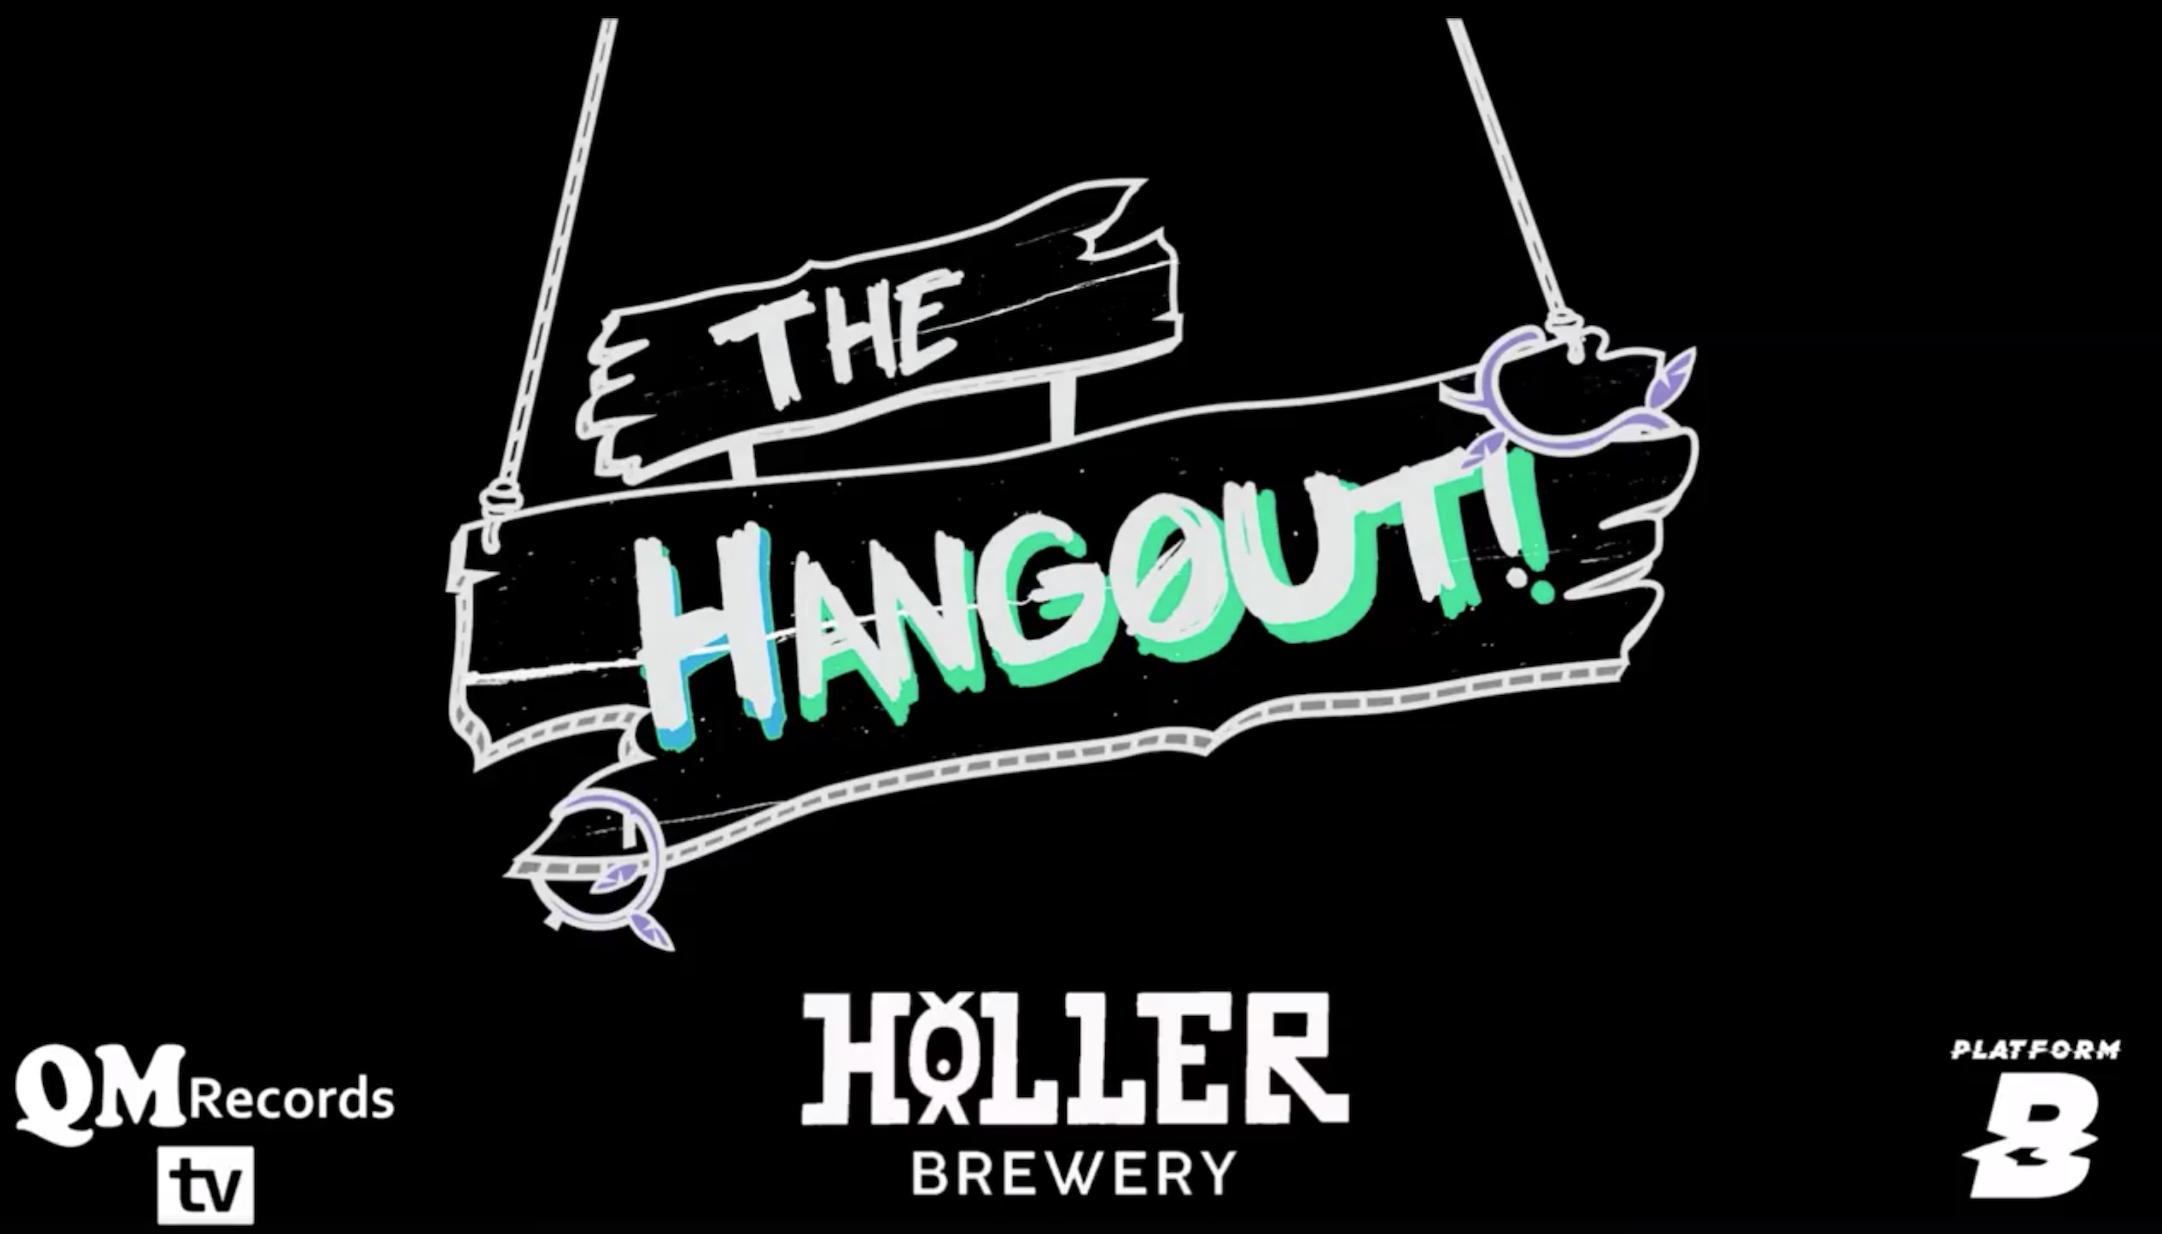 the-hangout-holler-brewery-qm-records-brighton-music.png